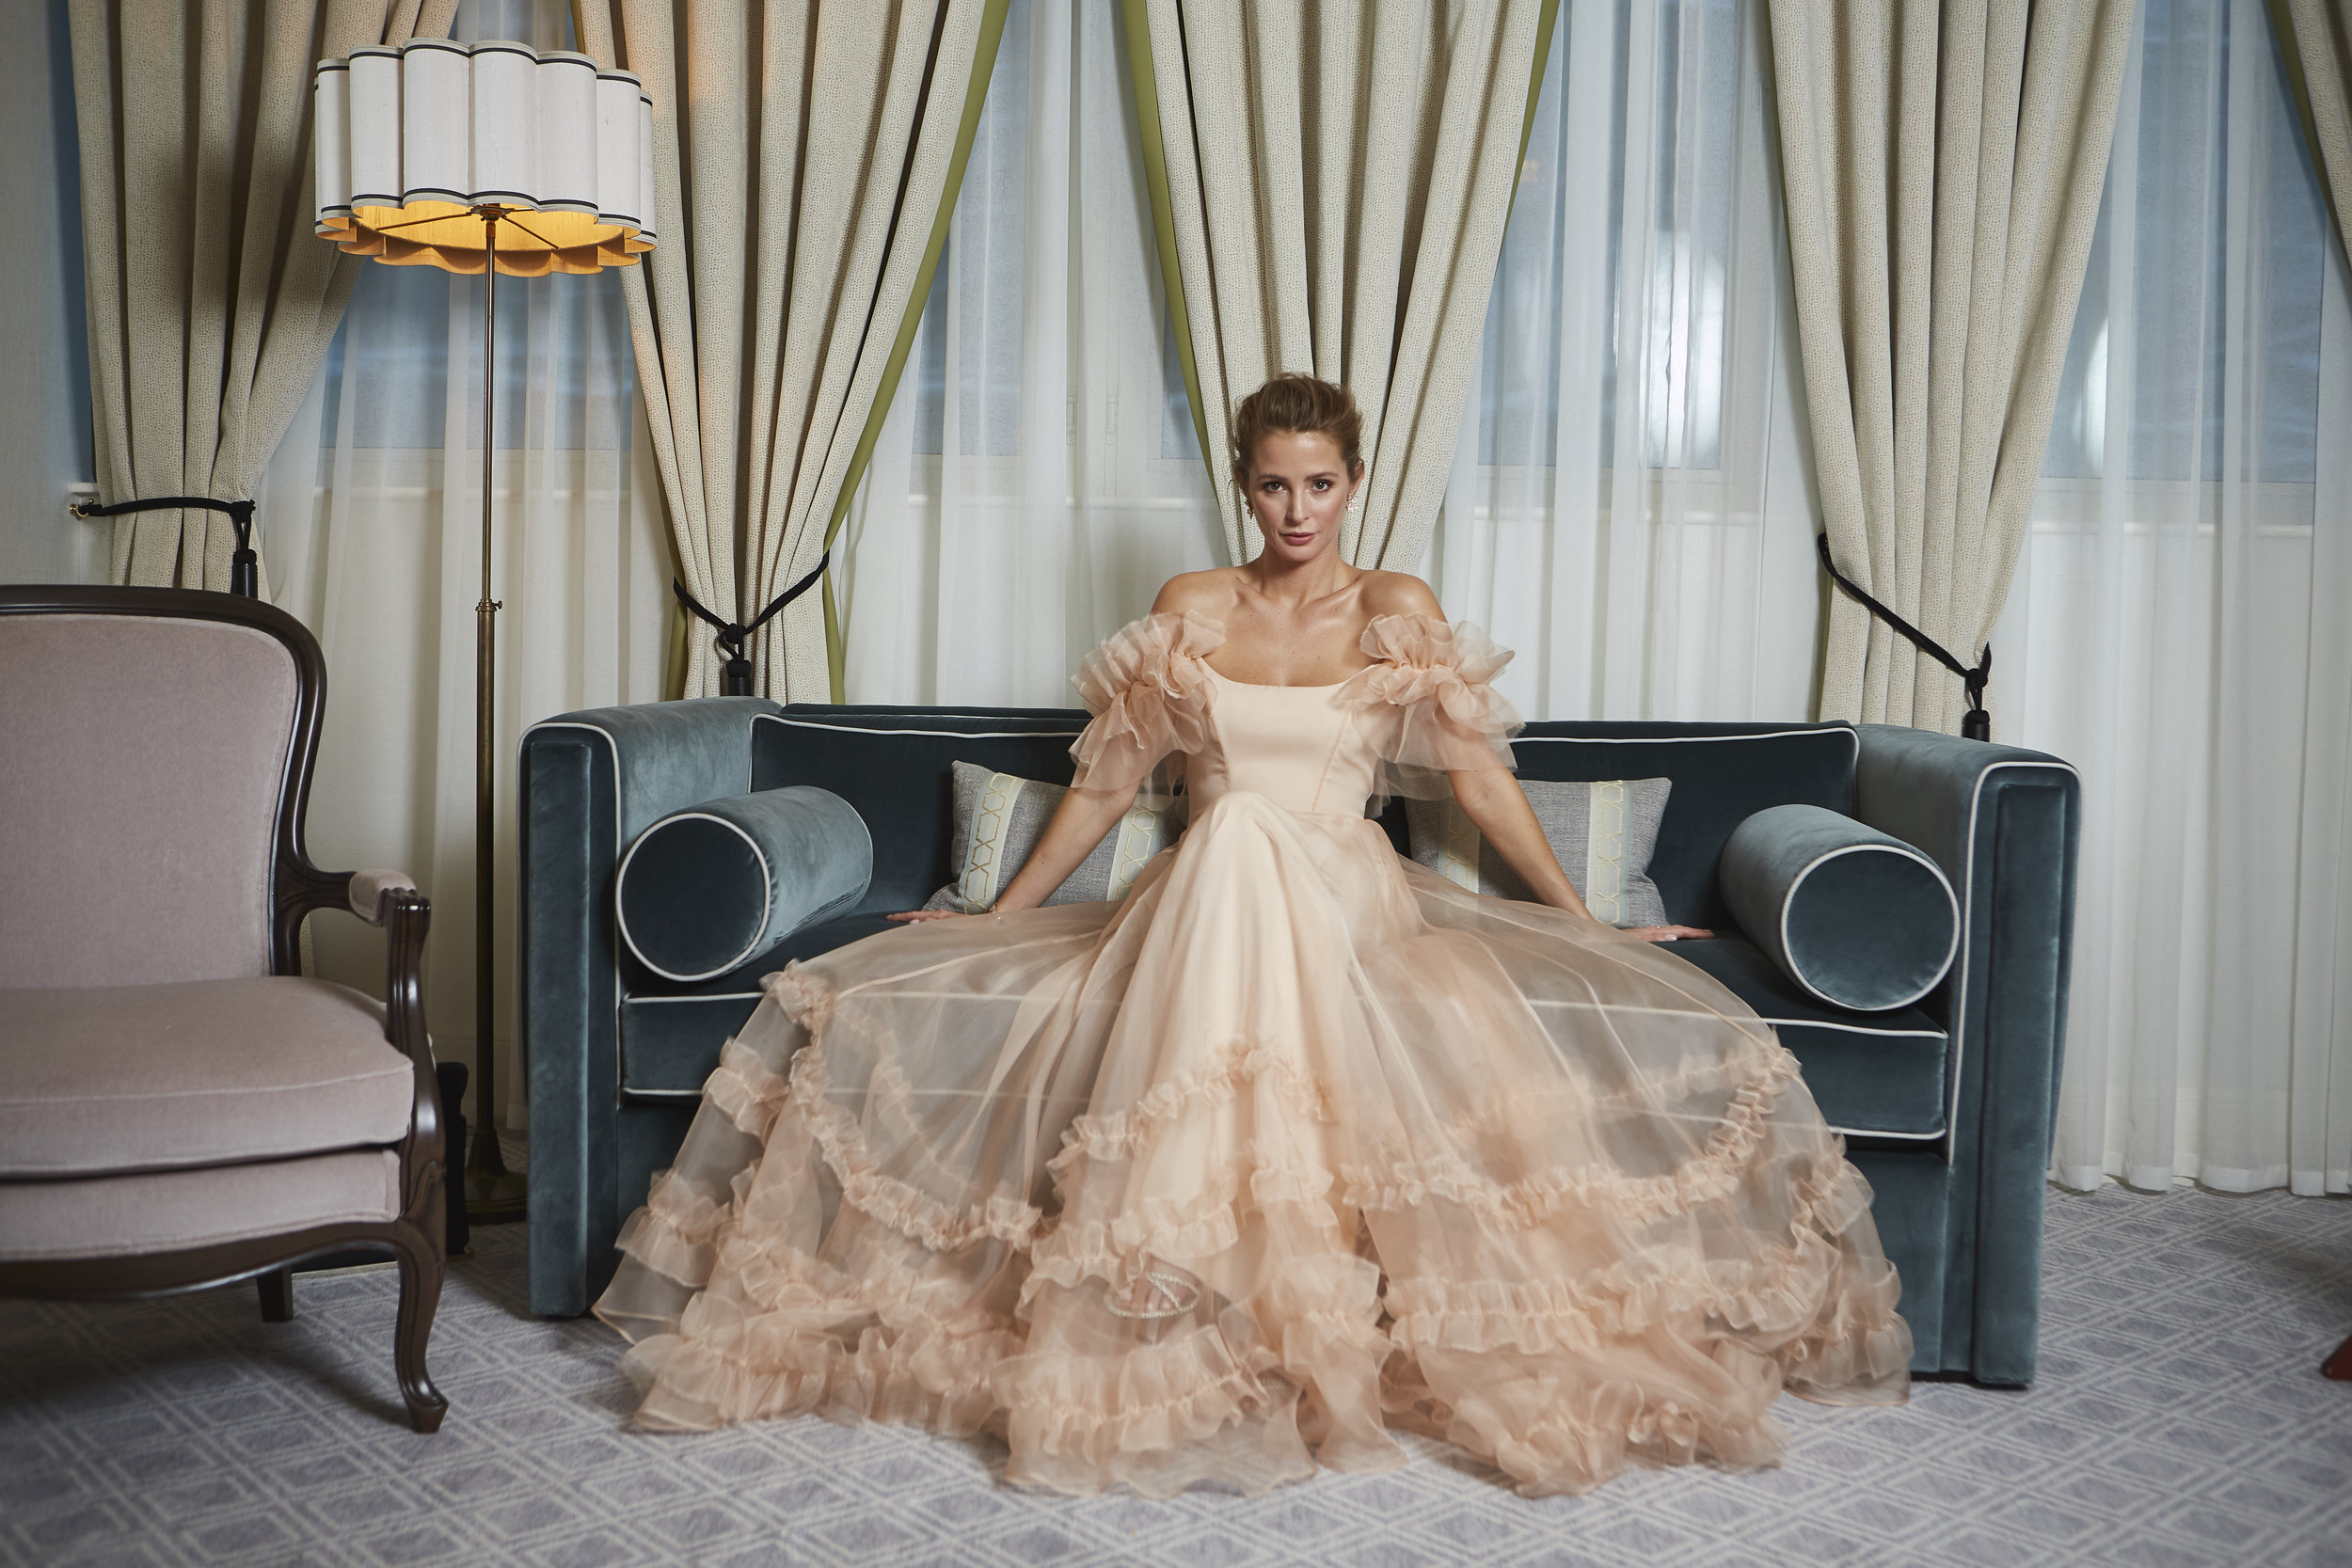 Millie Mackintosh BAFTA dress by Halfpenny London | Image by Hannah Taylor